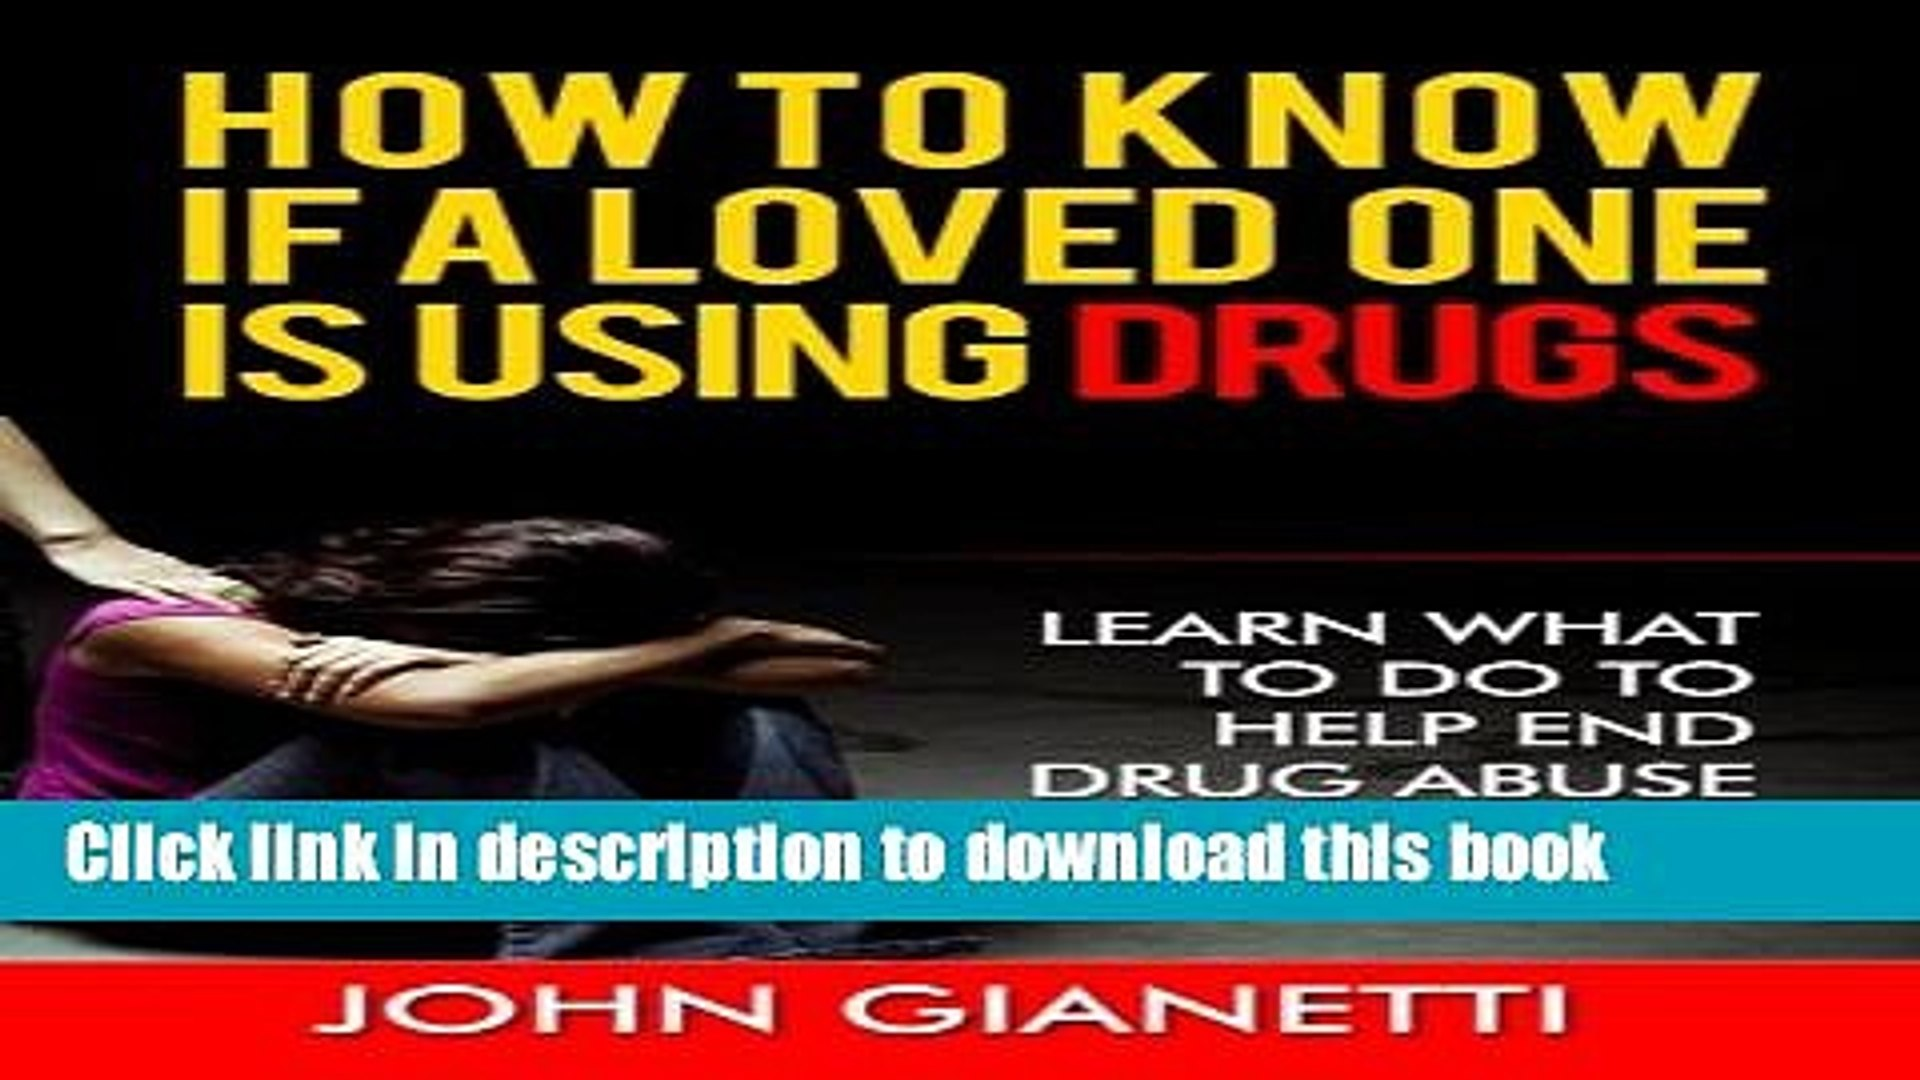 [Popular Books] How To Know If A Loved One Is Using Drugs: Learn What To Do To Help End Drug Abuse